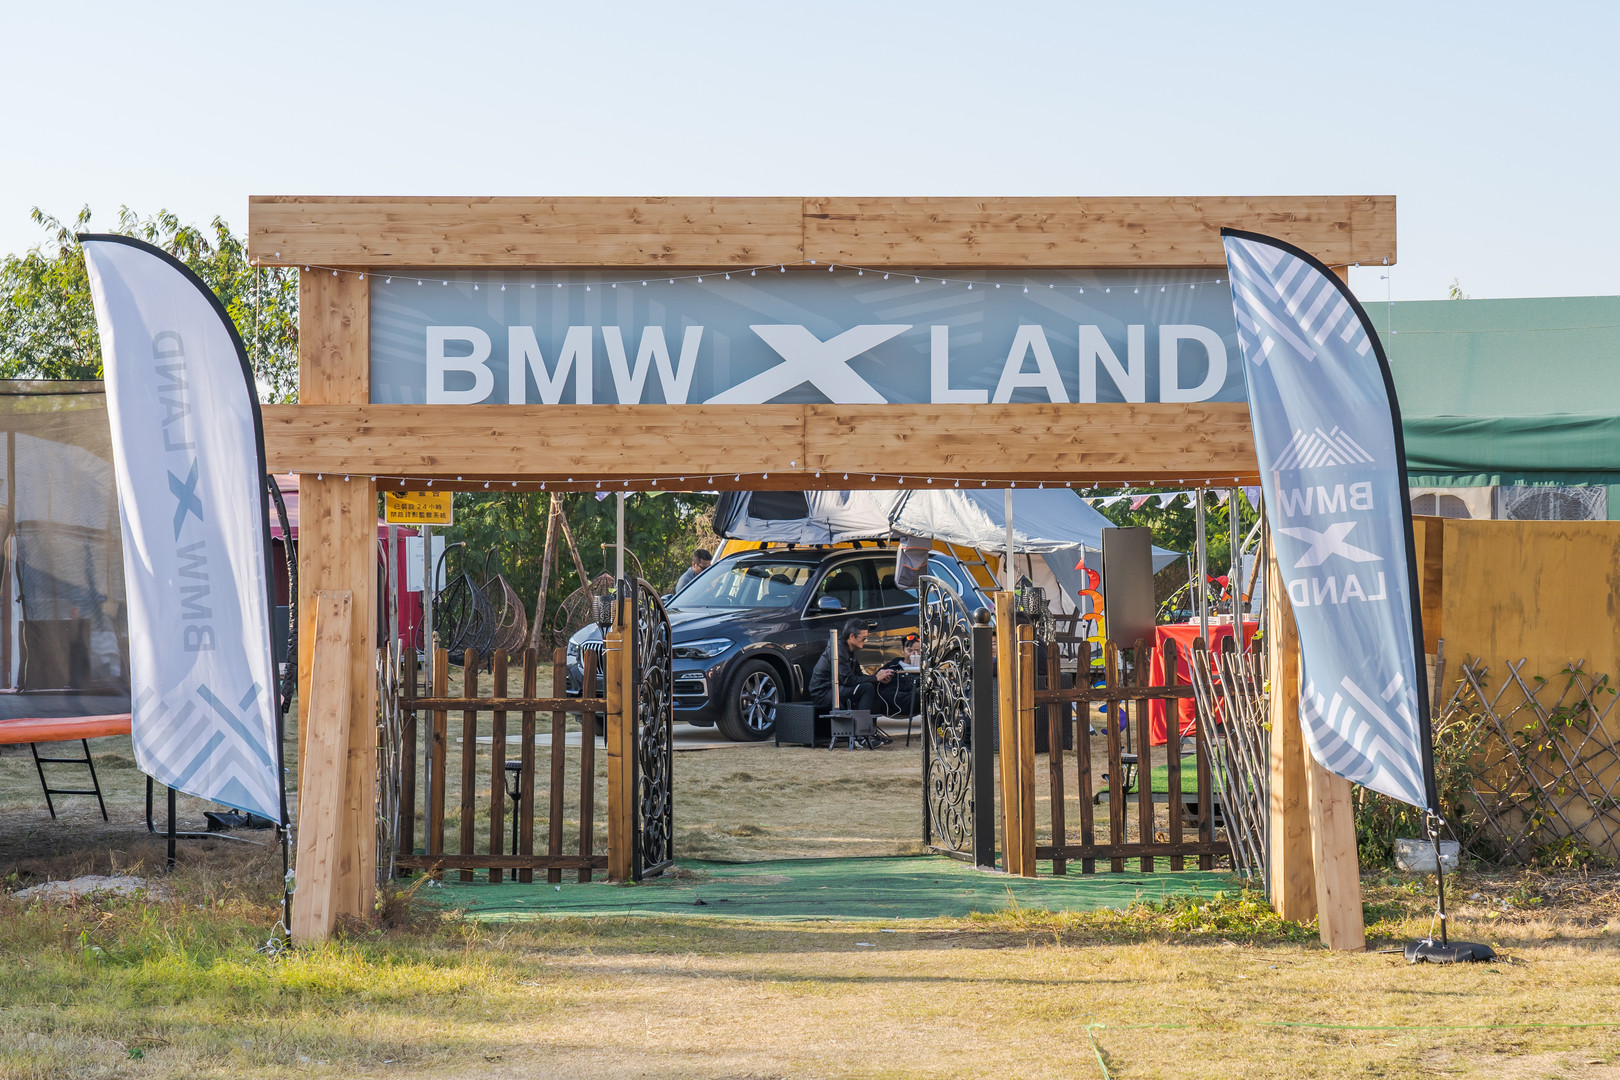 BMW x LAND event photography